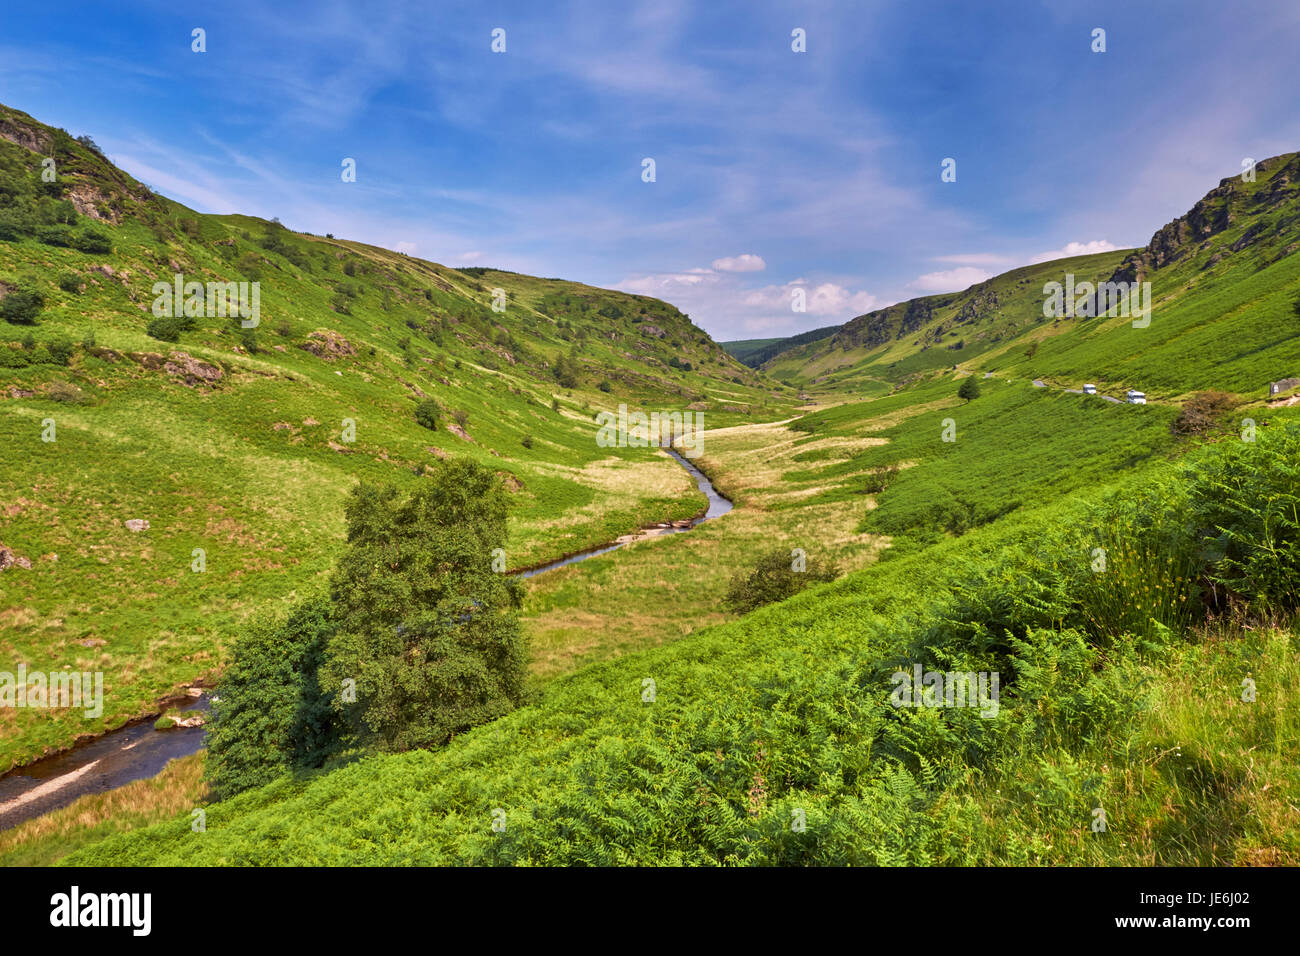 Camper vans on road in the Irfon Valley, north of Abergwesyn. Powys, Wales. - Stock Image